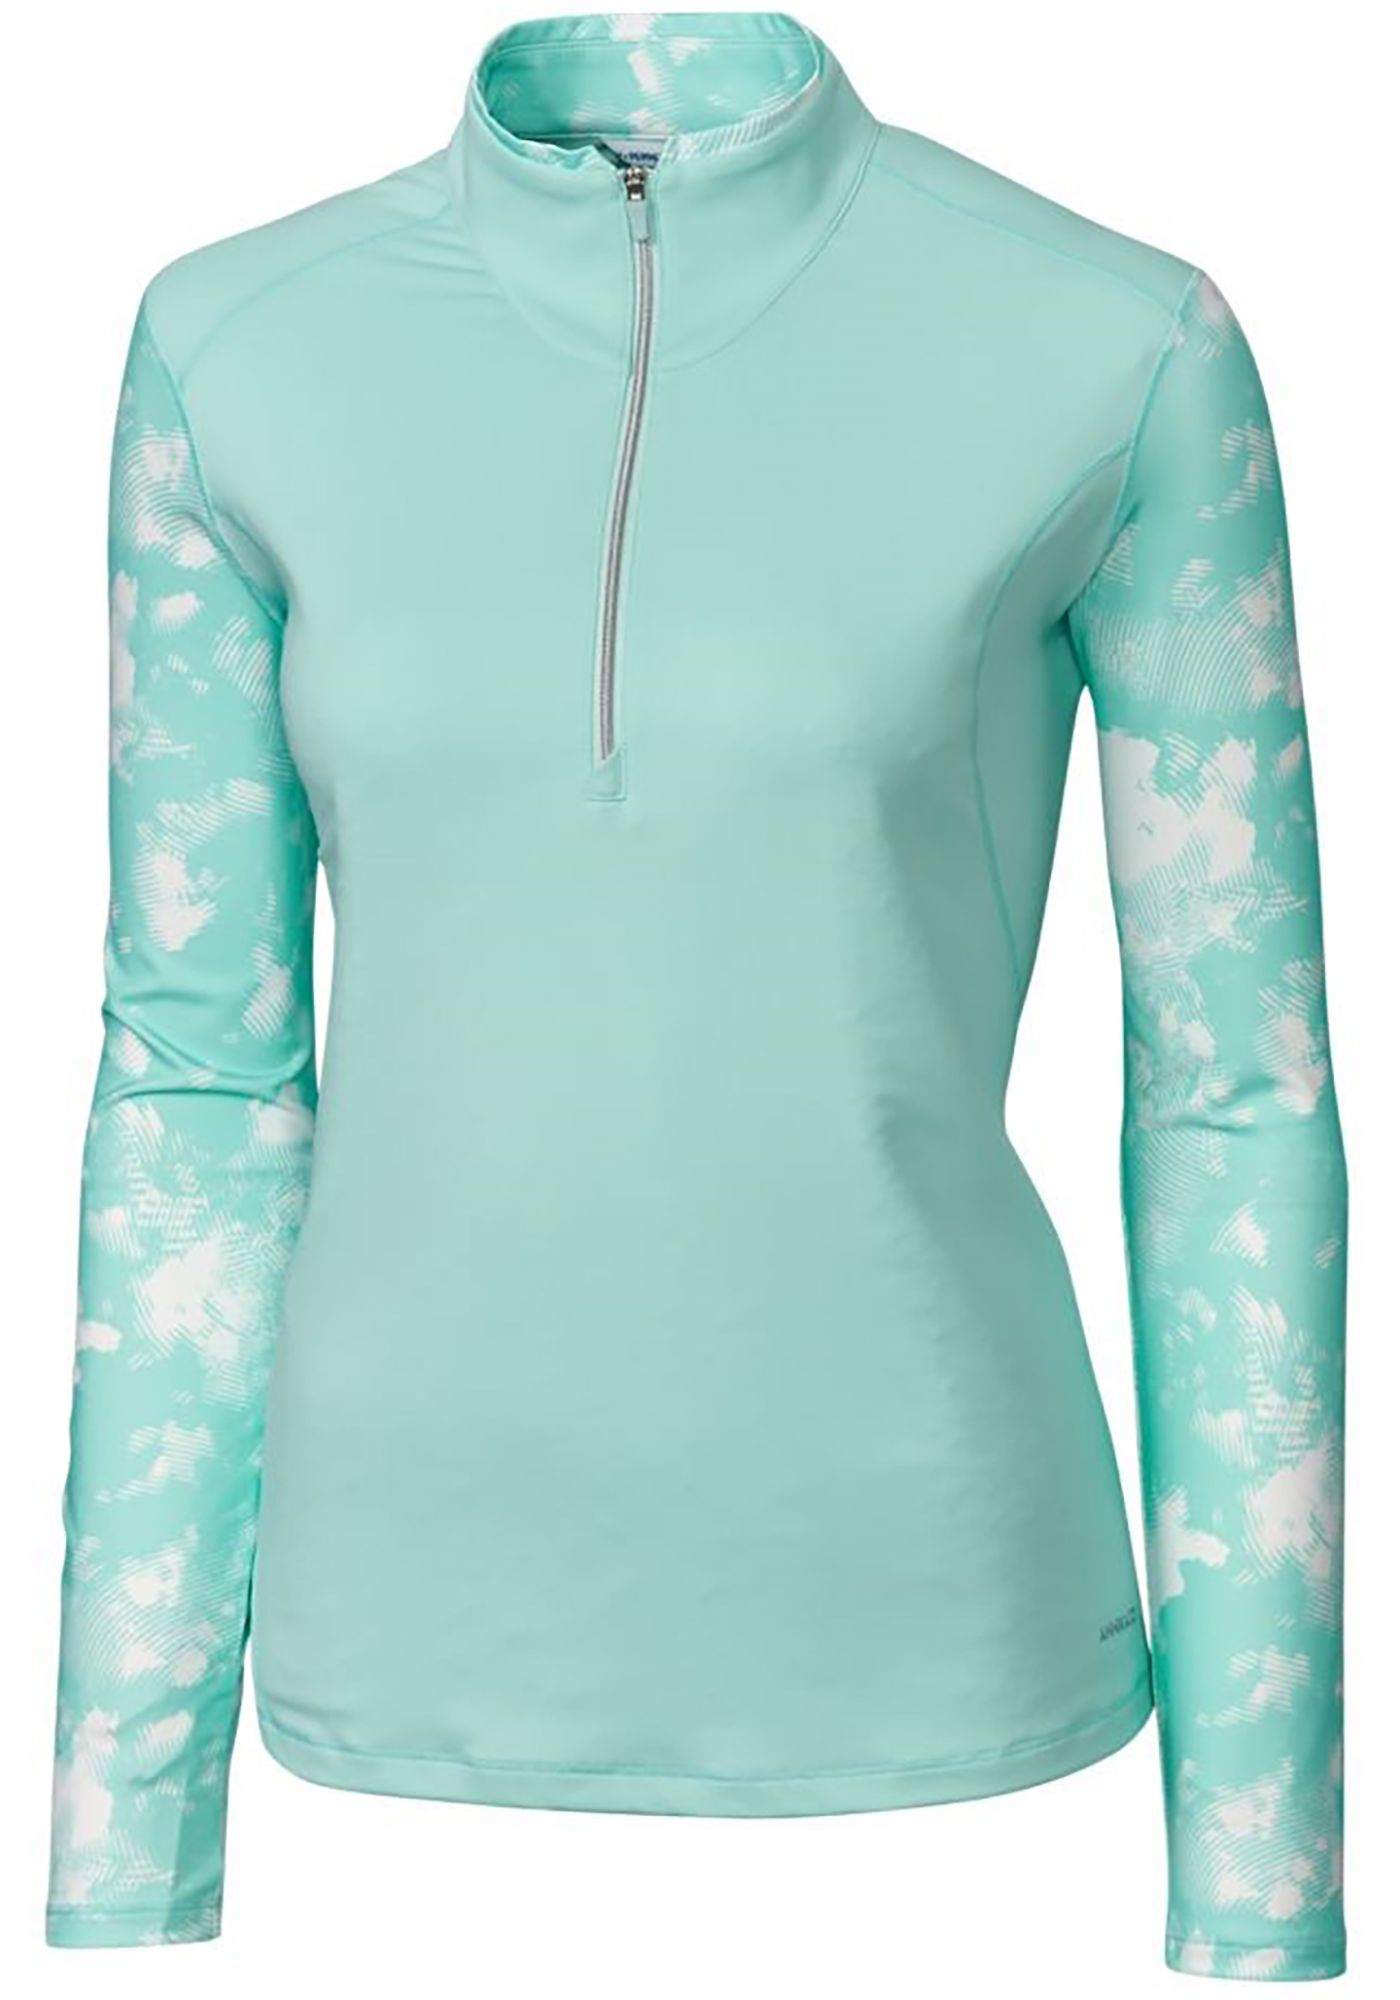 Cutter & Buck Women's Annika Energy Long Sleeve Half-Zip Golf Top